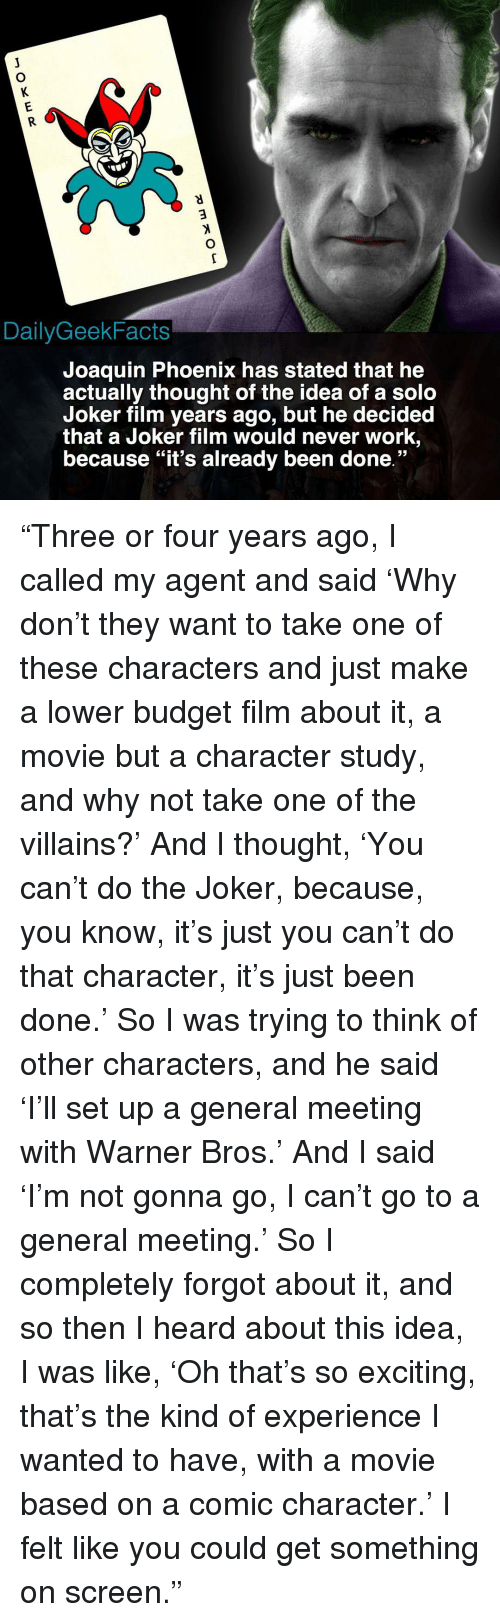 """Joker, Memes, and Warner Bros.: DailyGeekFacts  Joaquin Phoenix has stated that he  actually thought of the idea of a solo  Joker film years ago, but he decided  that a Joker film would never work,  because """"it's already been done."""" """"Three or four years ago, I called my agent and said 'Why don't they want to take one of these characters and just make a lower budget film about it, a movie but a character study, and why not take one of the villains?' And I thought, 'You can't do the Joker, because, you know, it's just you can't do that character, it's just been done.' So I was trying to think of other characters, and he said 'I'll set up a general meeting with Warner Bros.' And I said 'I'm not gonna go, I can't go to a general meeting.' So I completely forgot about it, and so then I heard about this idea, I was like, 'Oh that's so exciting, that's the kind of experience I wanted to have, with a movie based on a comic character.' I felt like you could get something on screen."""""""